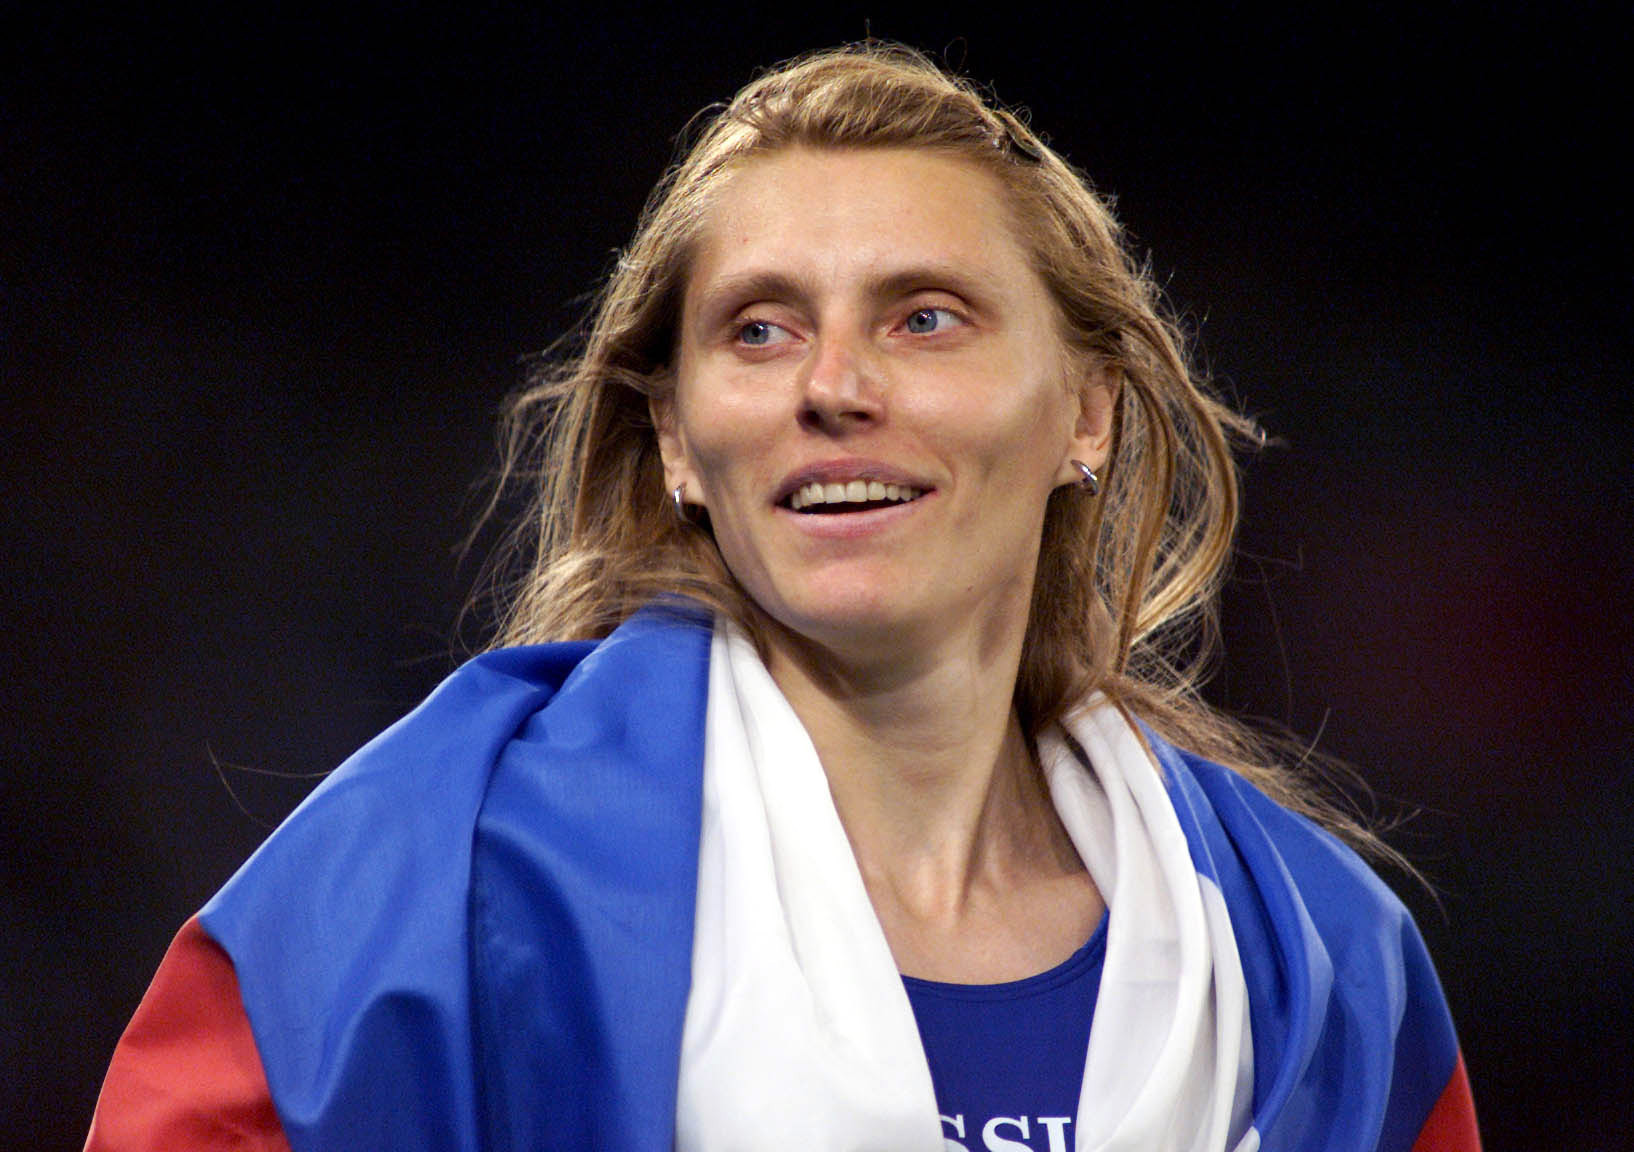 Irina Privalova is Acting President of the Russian Athletics Federation ©Getty Images